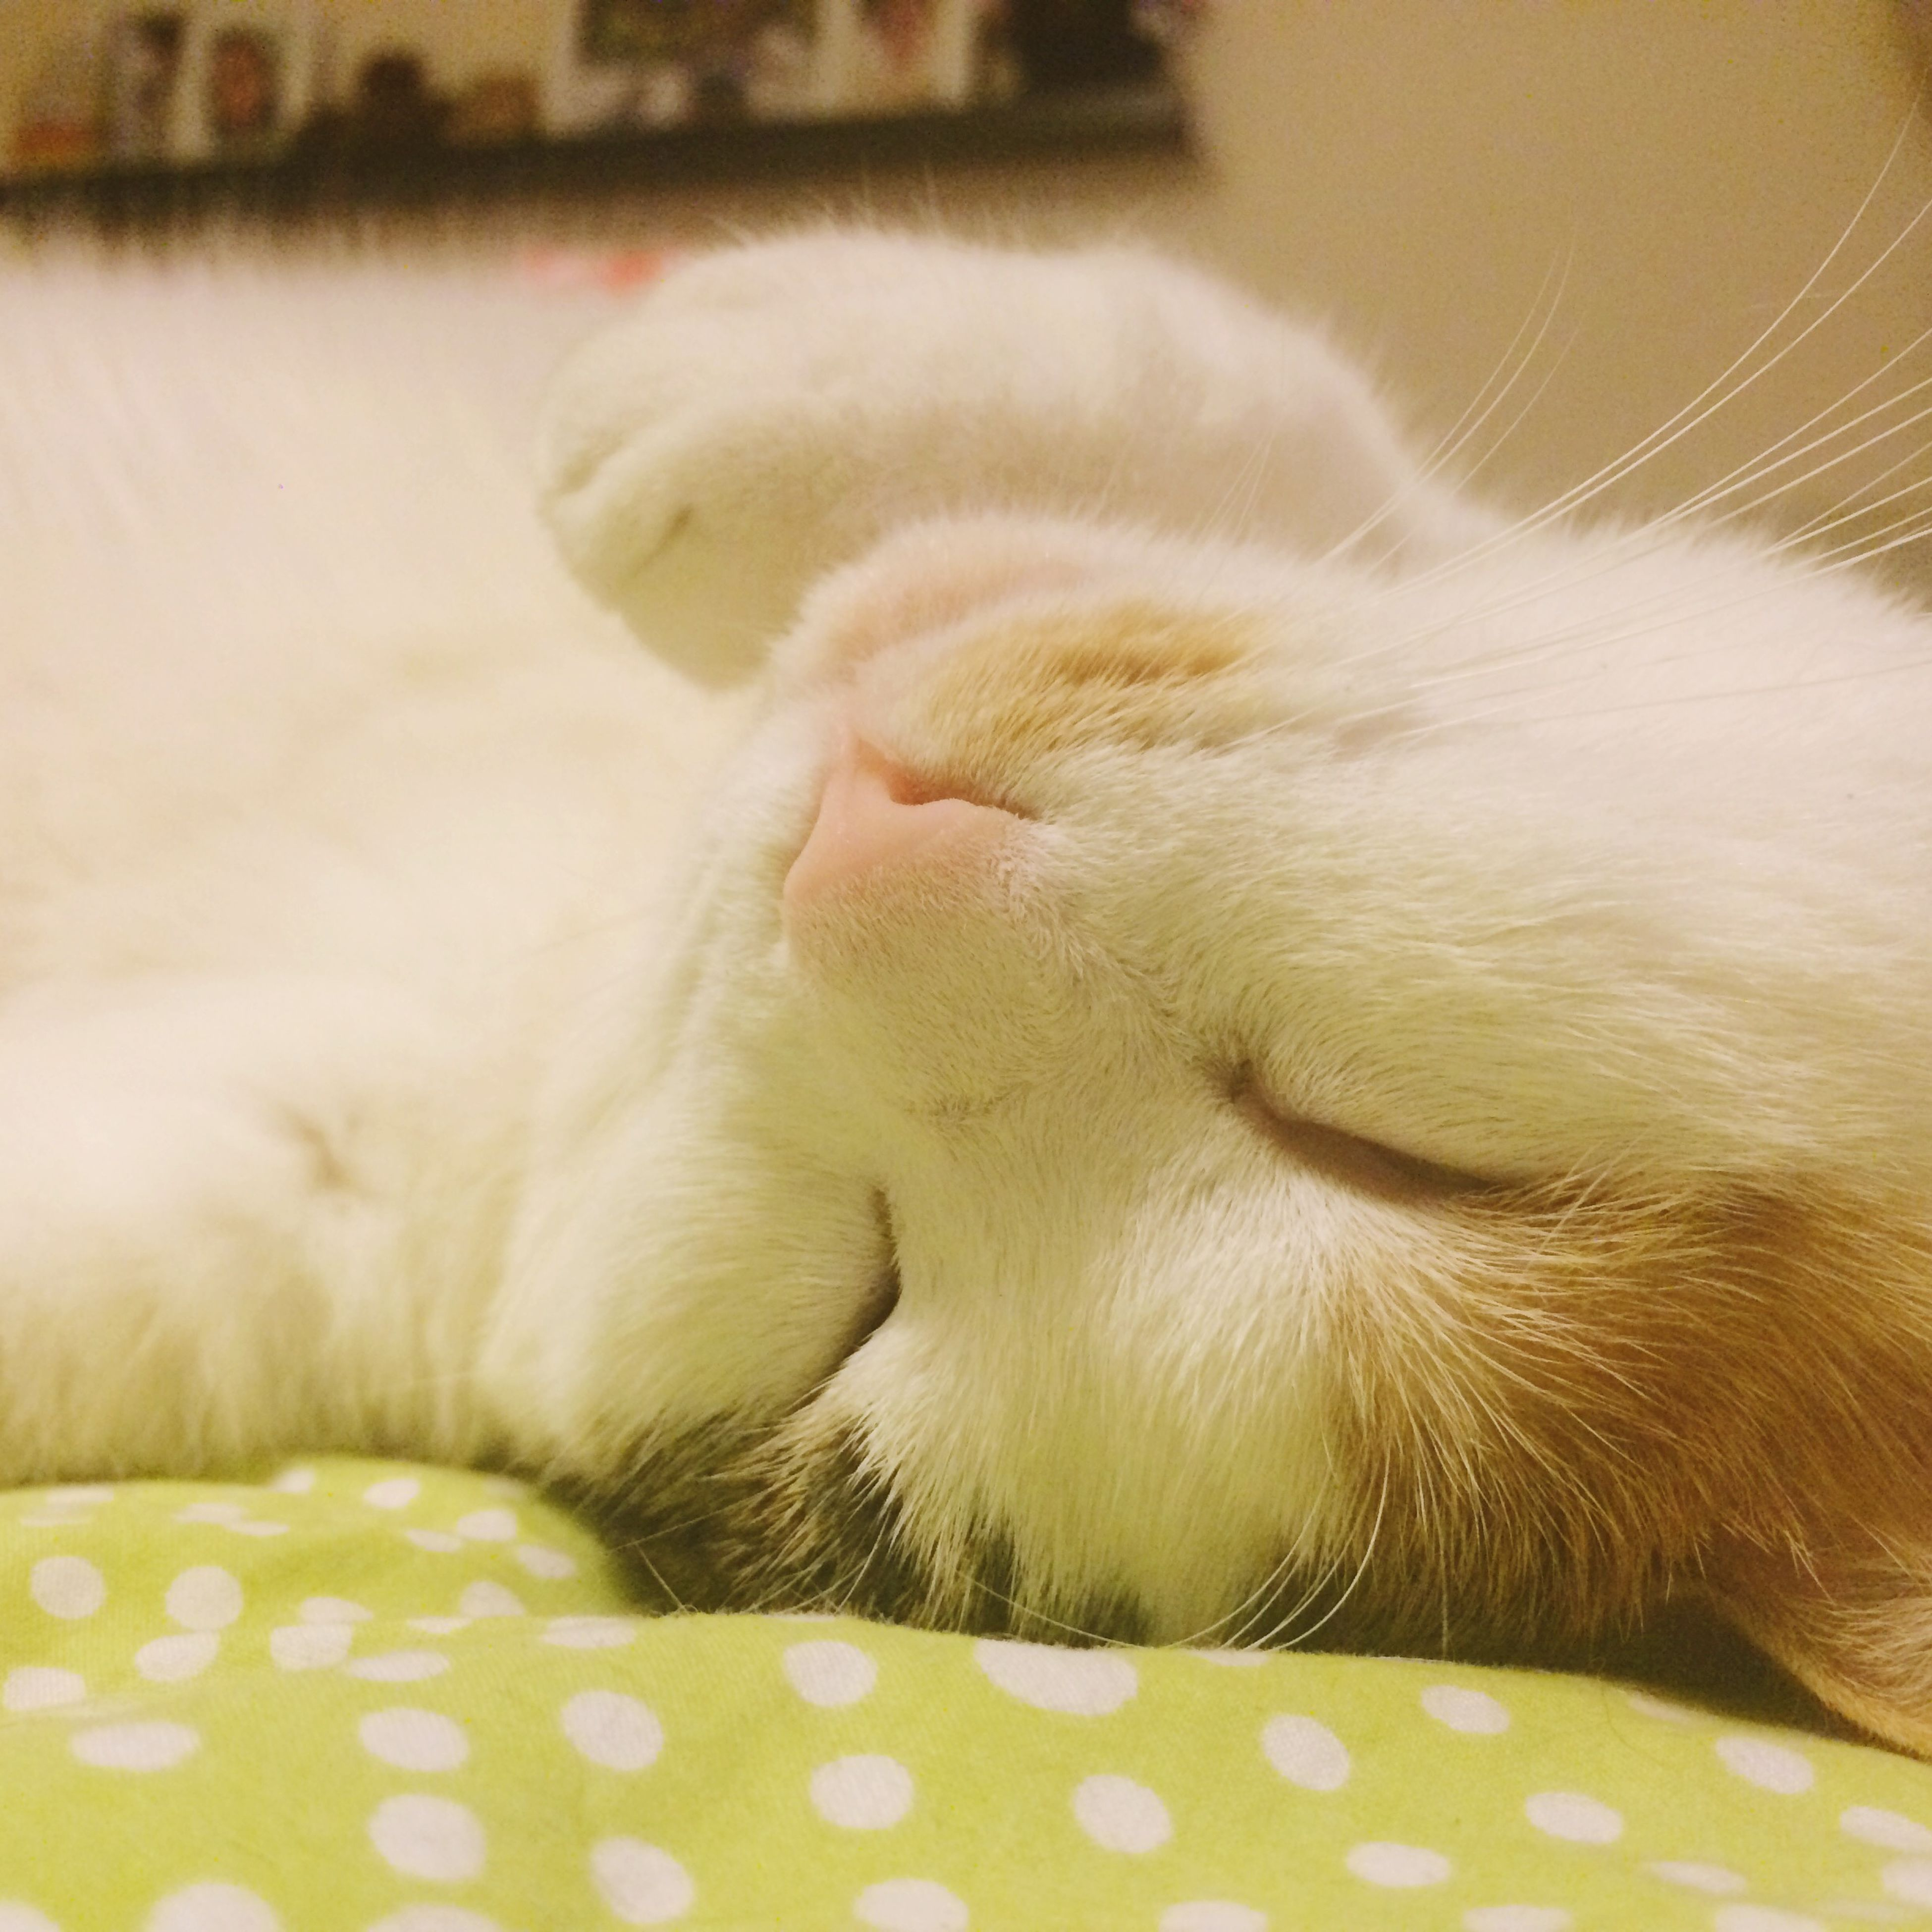 pets, domestic animals, domestic cat, animal themes, cat, one animal, mammal, indoors, feline, relaxation, whisker, close-up, resting, lying down, sleeping, animal head, eyes closed, zoology, animal body part, bed